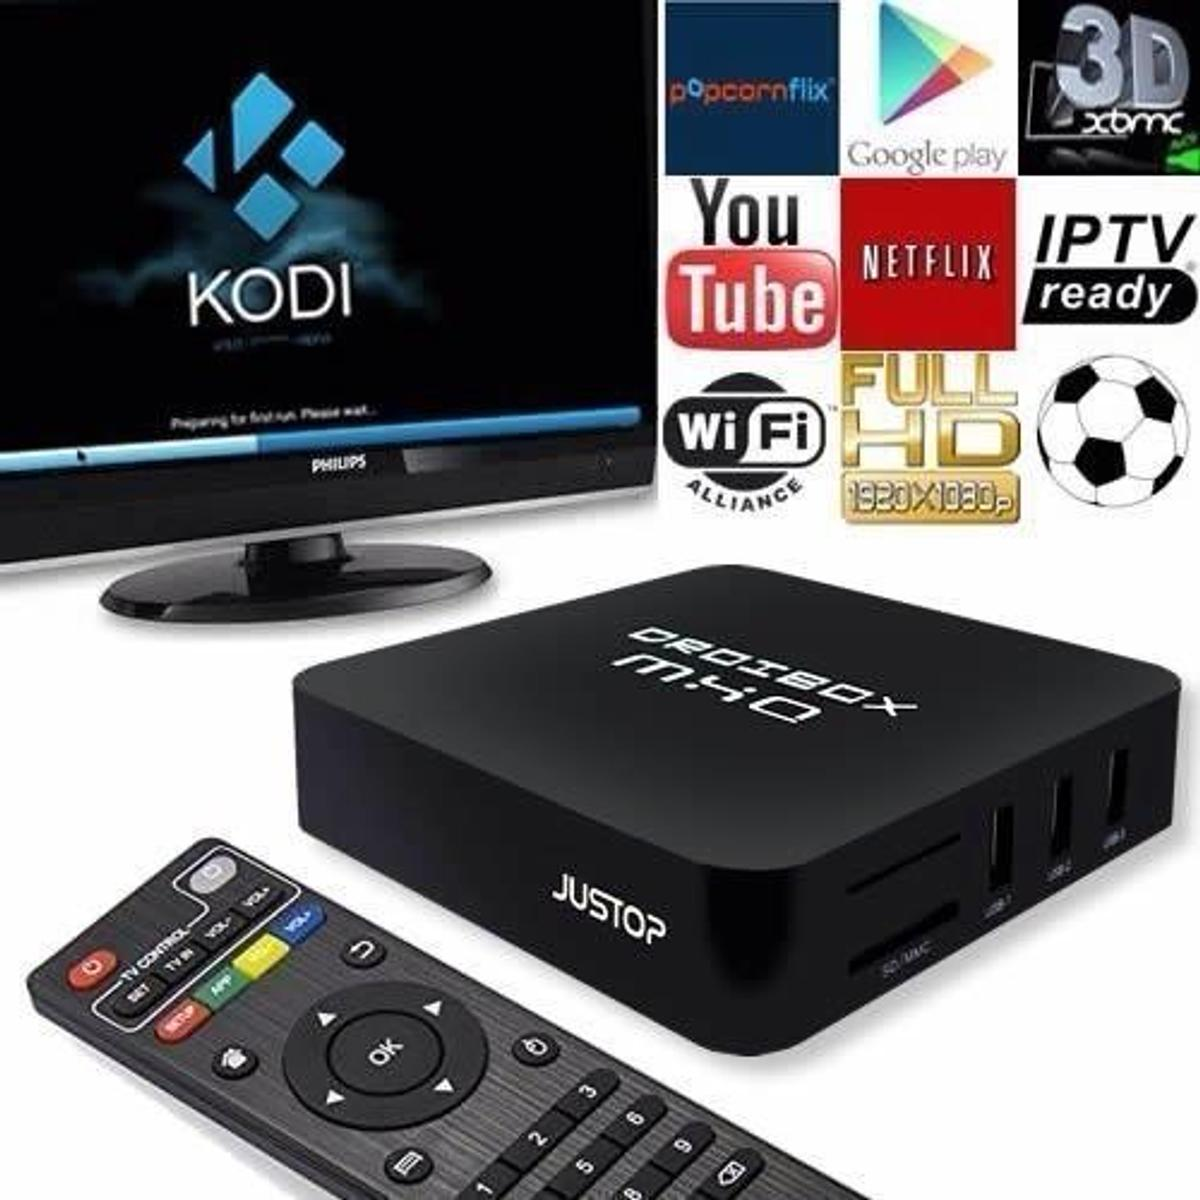 NEW ANDROID SMART TV BOX (KODI) in RM8 London for £50 00 for